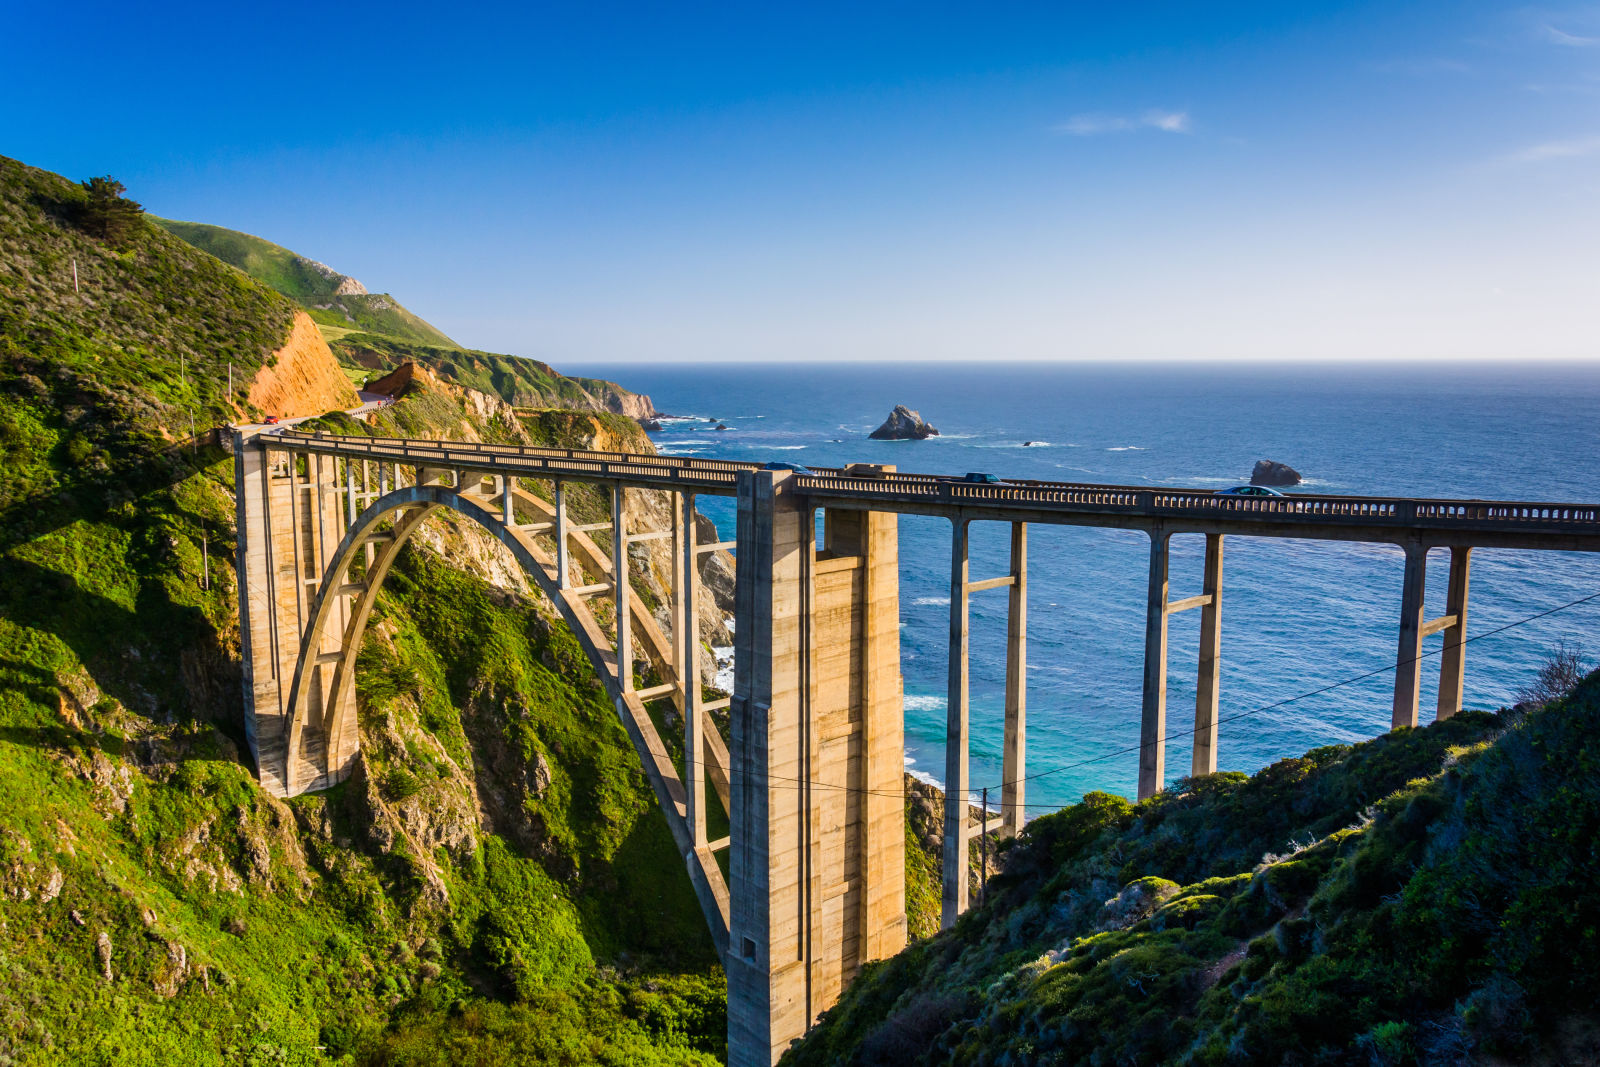 Bixby Creek Bridge, Big Sur California, Highway 1